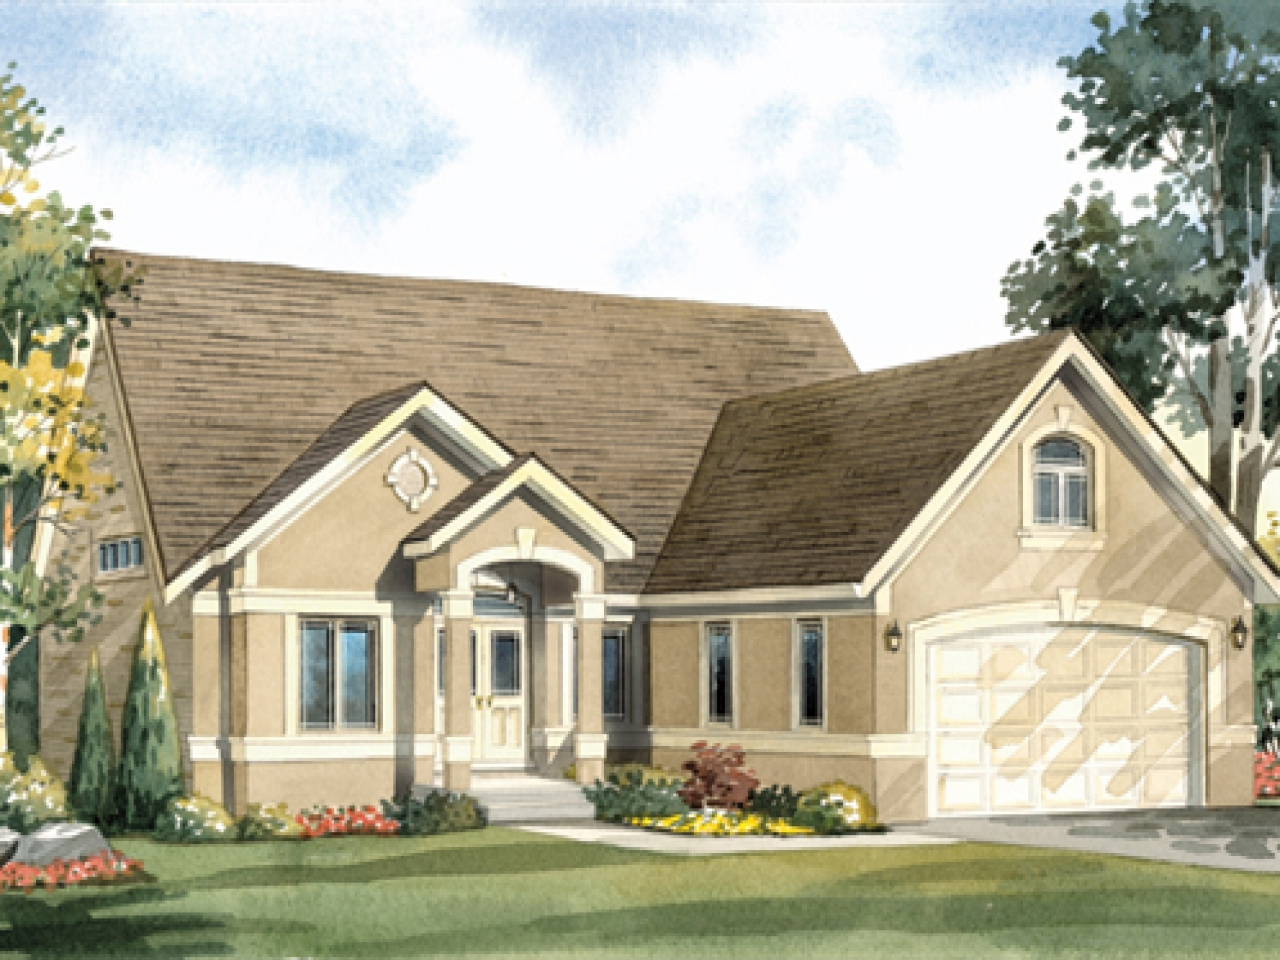 Bungalow front porch with house plans bungalow house plans for California garage plans